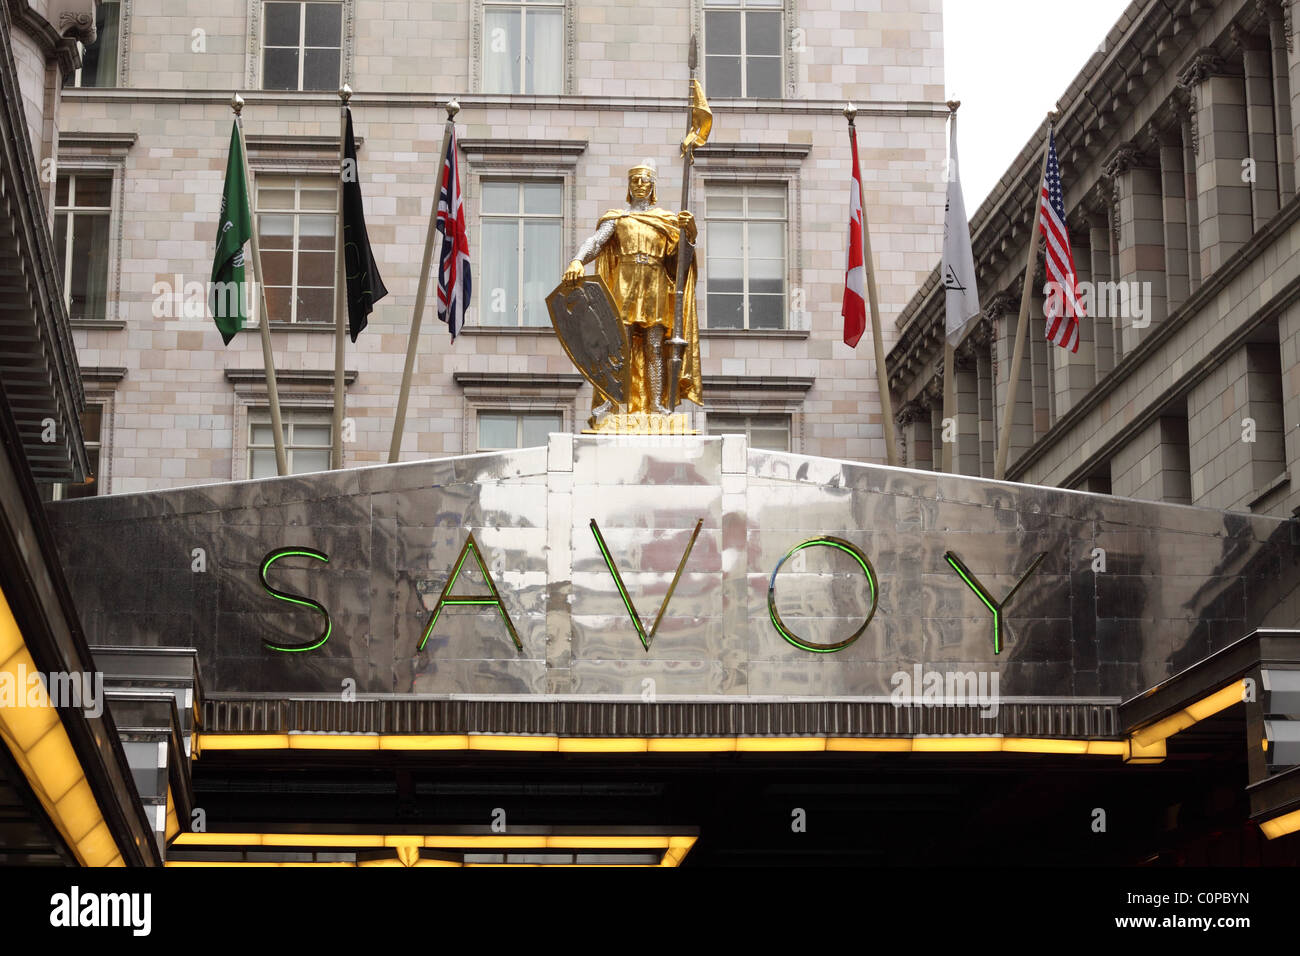 The Savoy Hotel, Strand, London - Stock Image